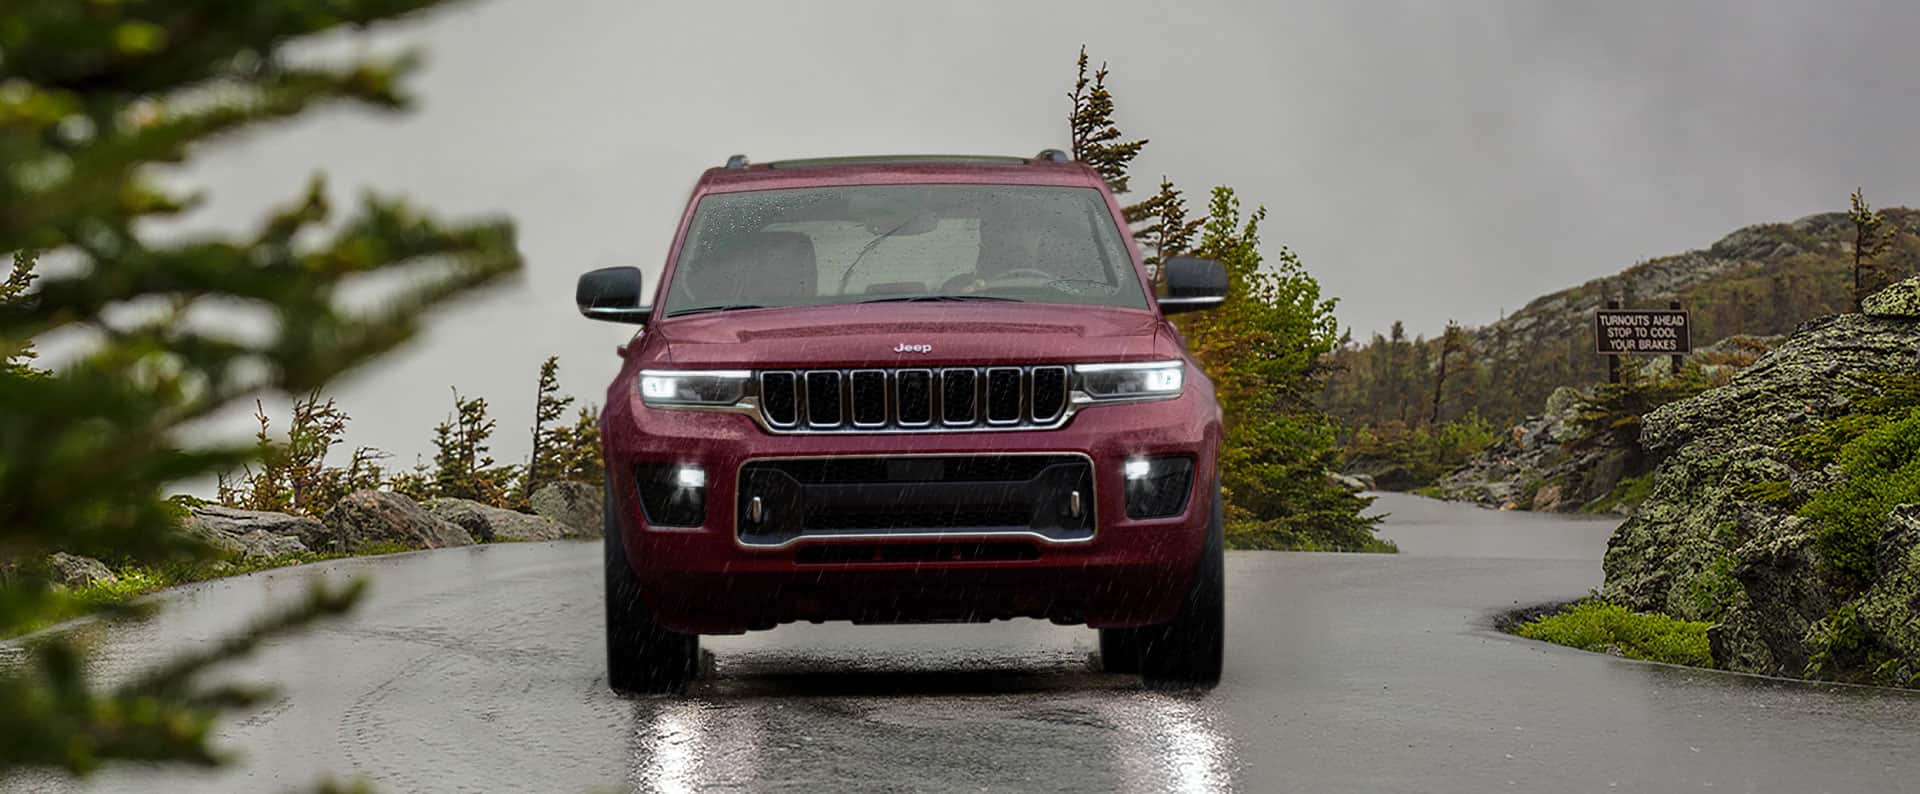 A head-on view of a 2021 Jeep Grand Cherokee L Overland being driven on a rain-slicked road.